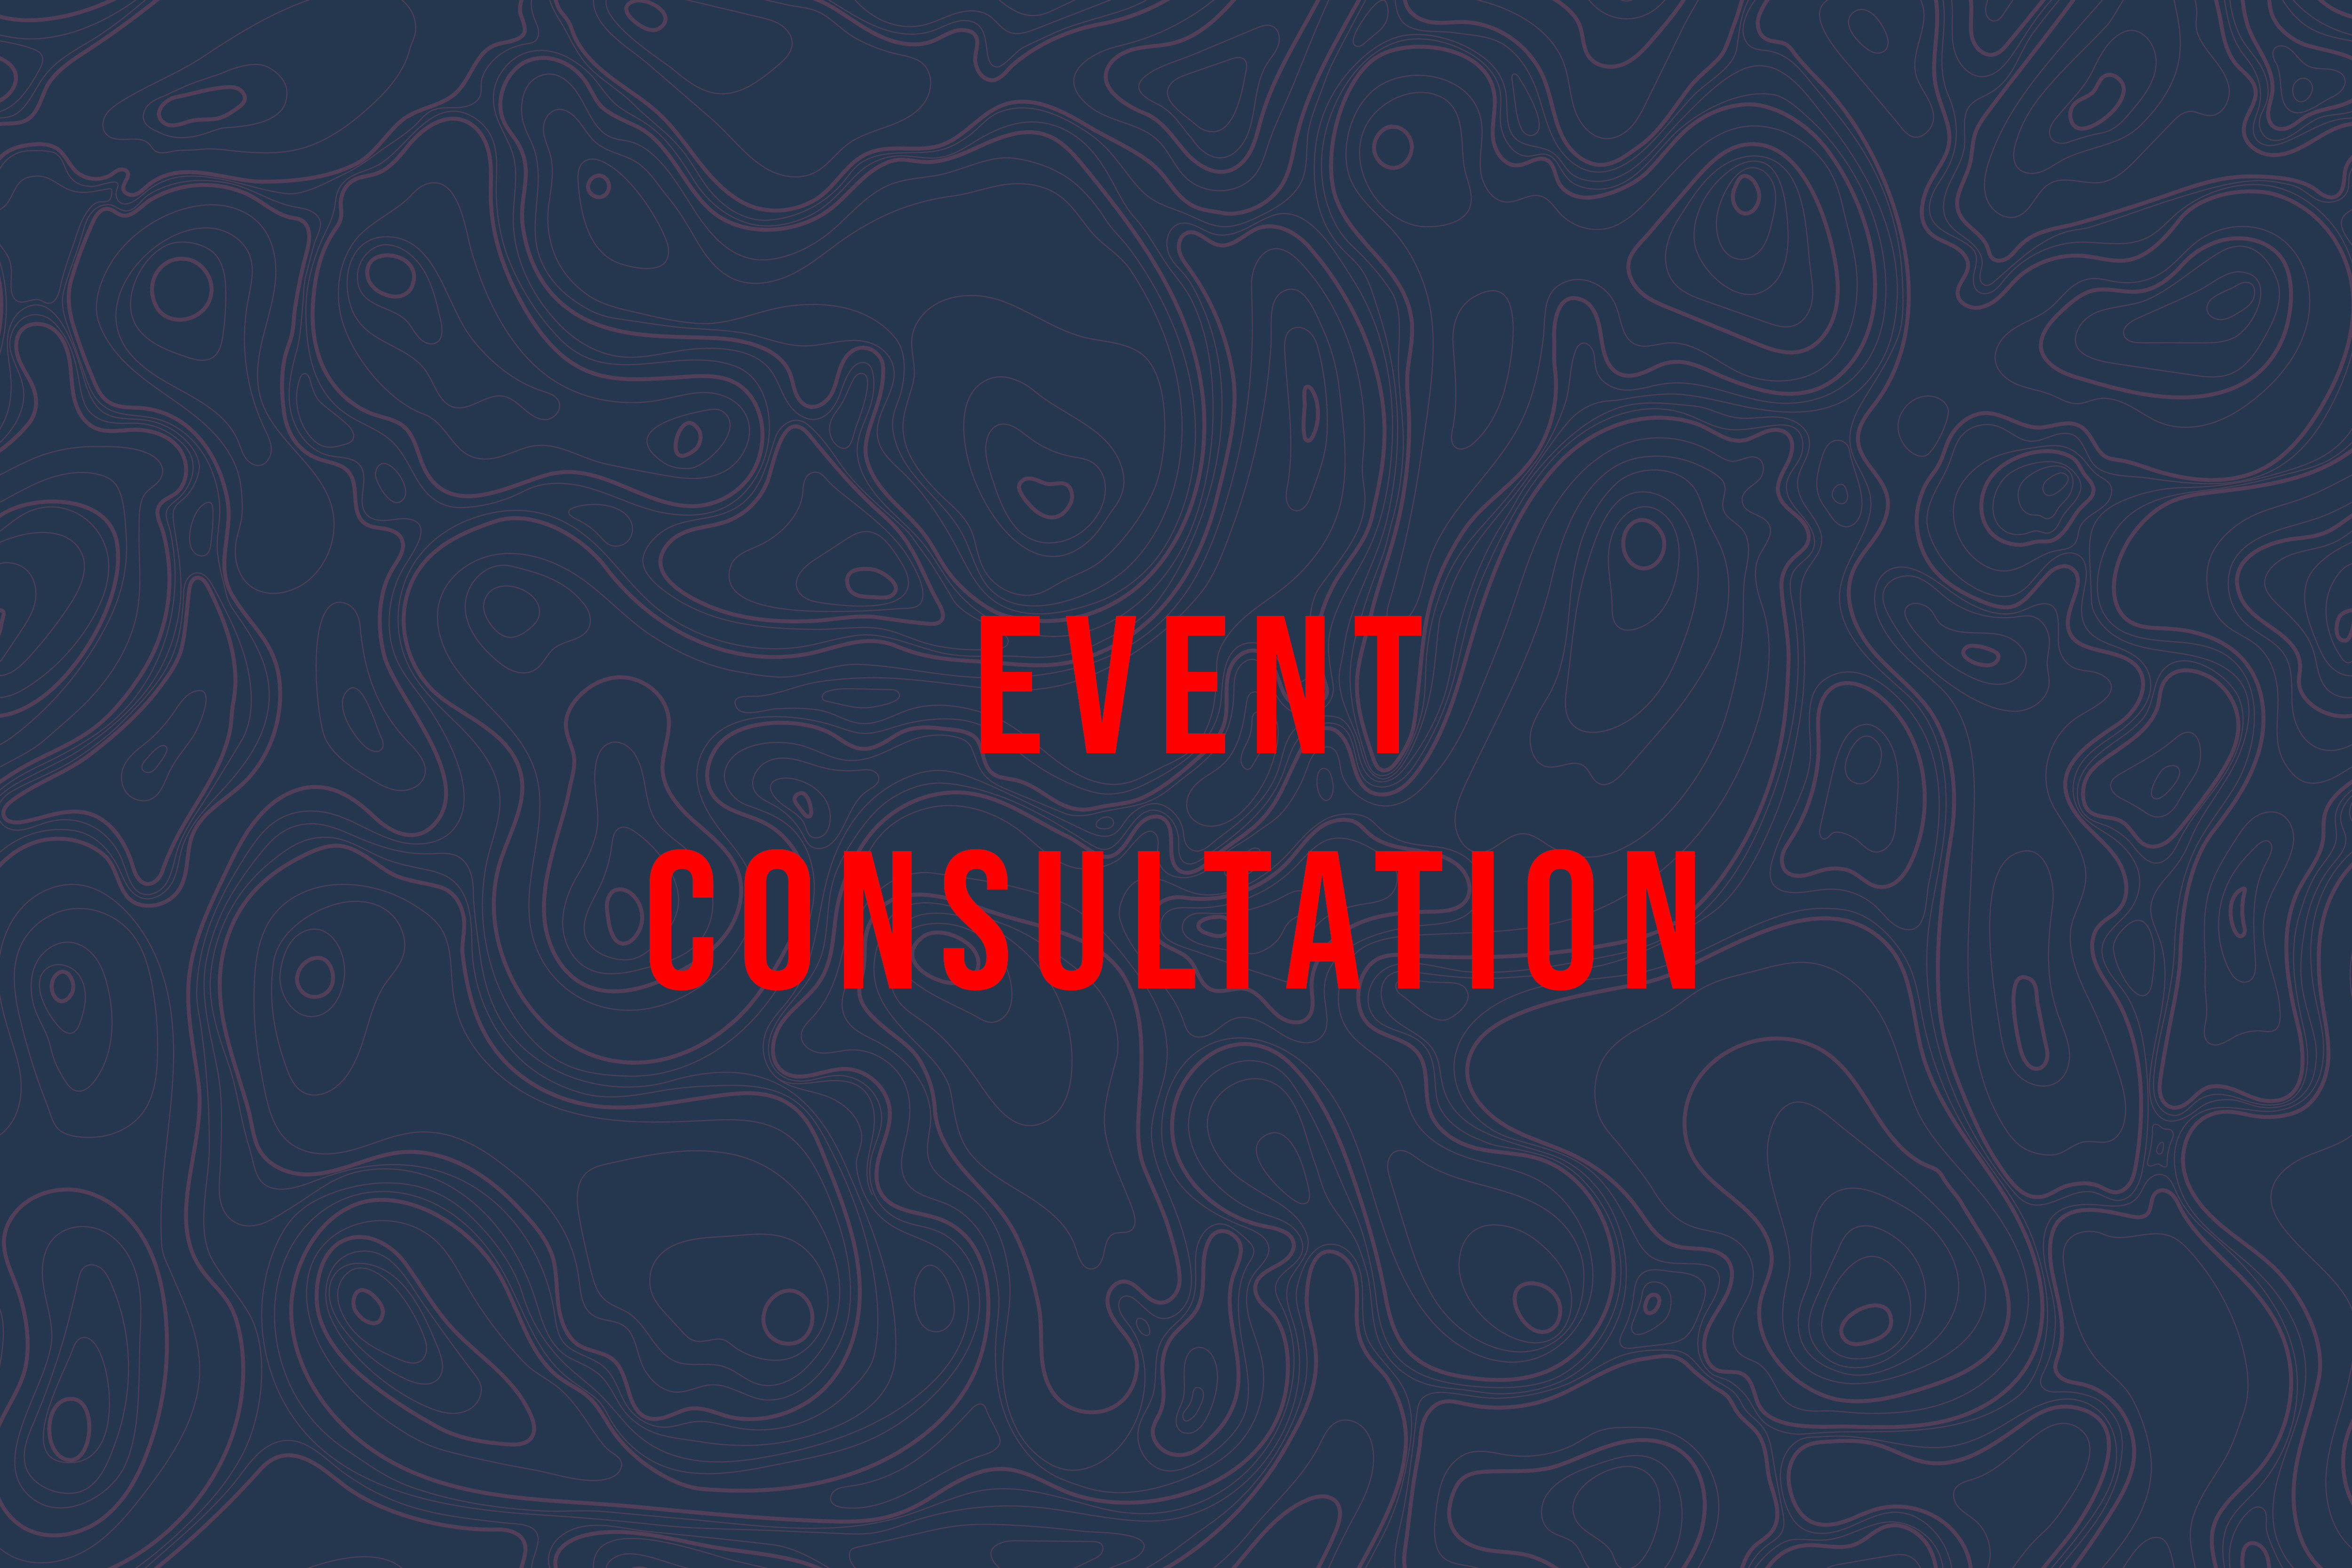 Complementary Event Consultation